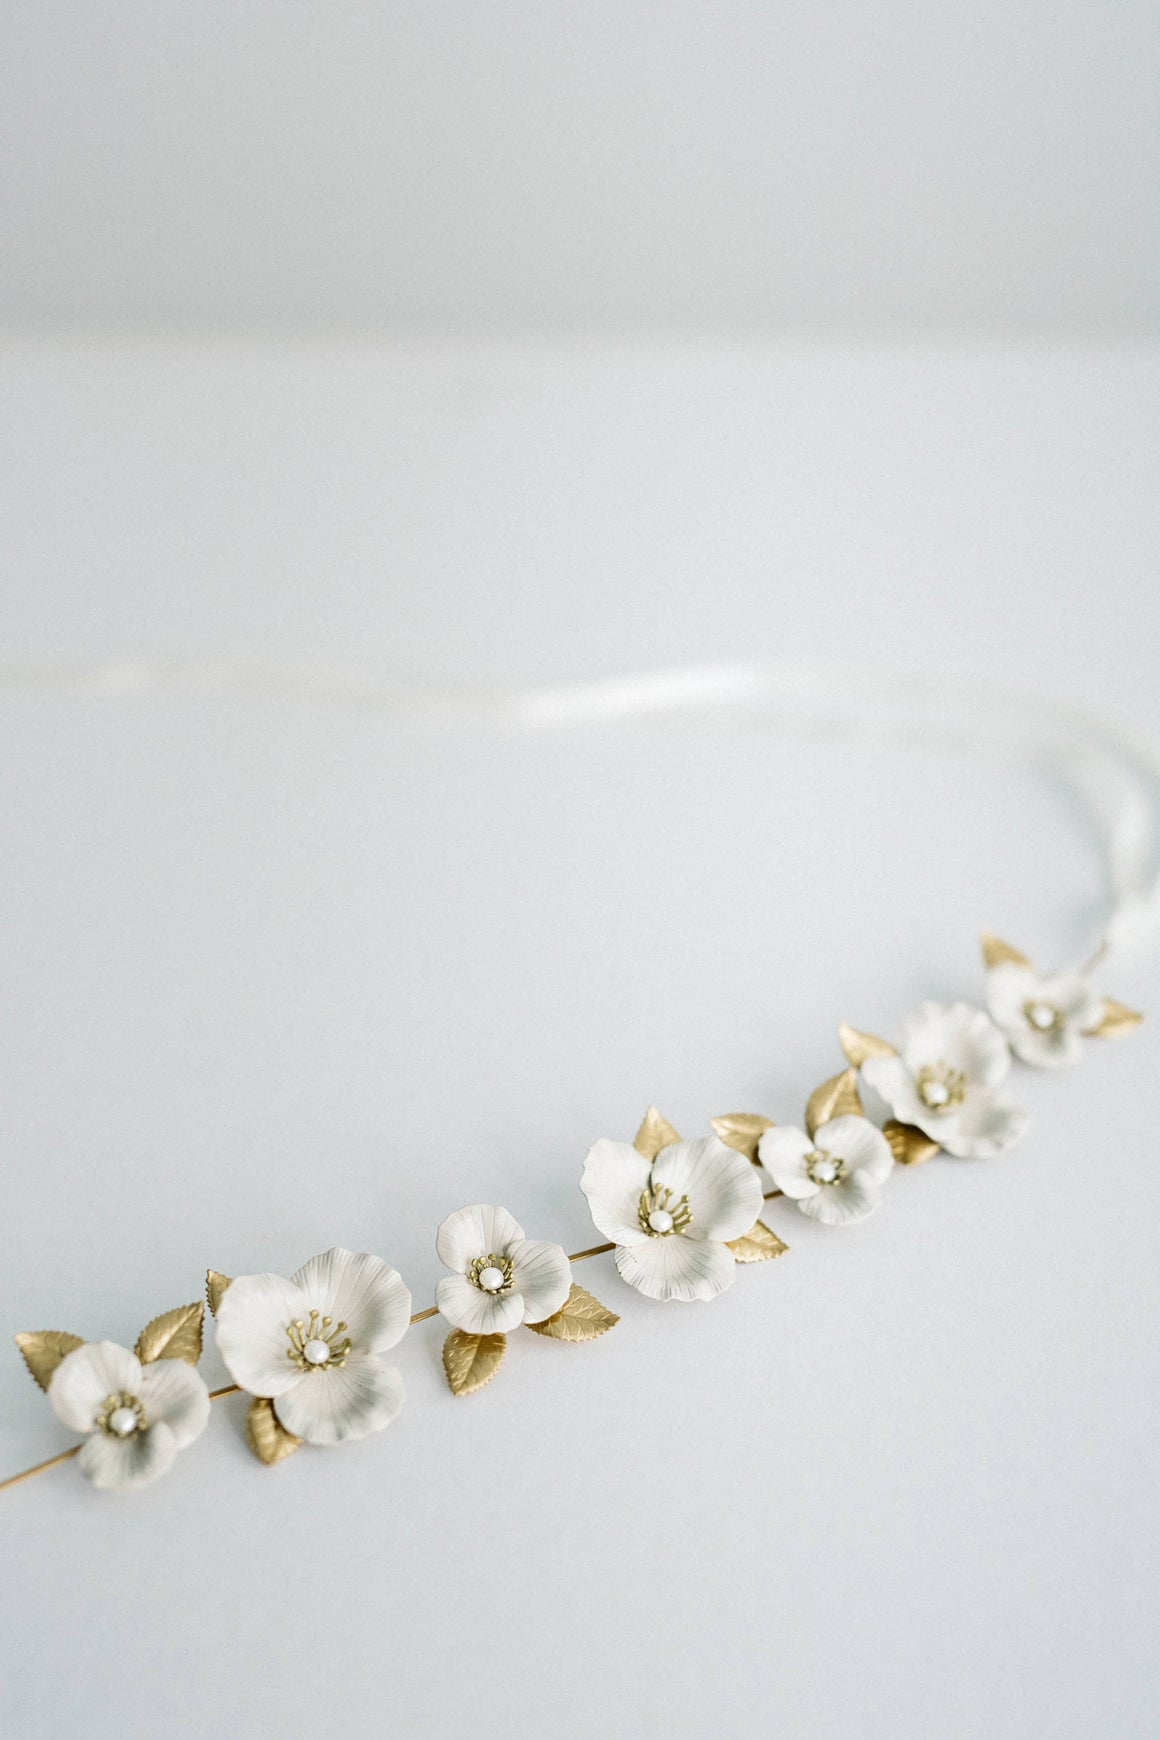 Close up of a bridal sash made of gold leaves and ivory flowers